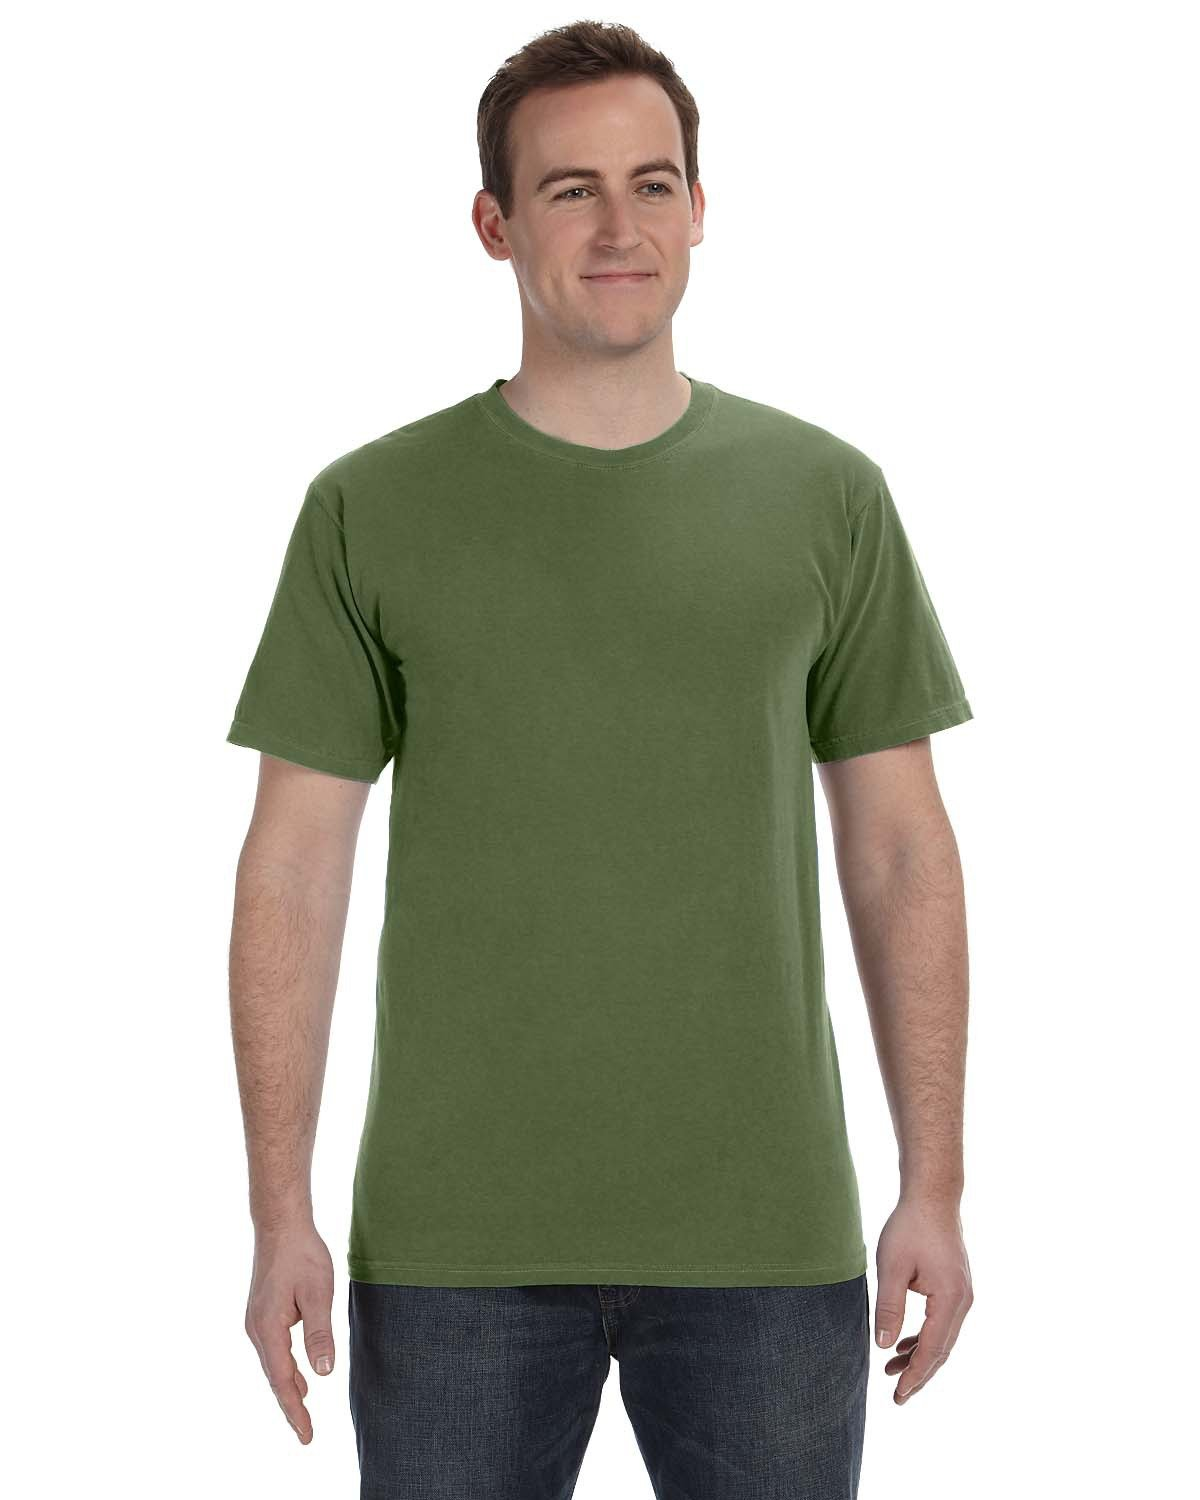 Authentic Pigment 5.6 oz. Pigment-Dyed & Direct-Dyed Ringspun T-Shirt HEMP